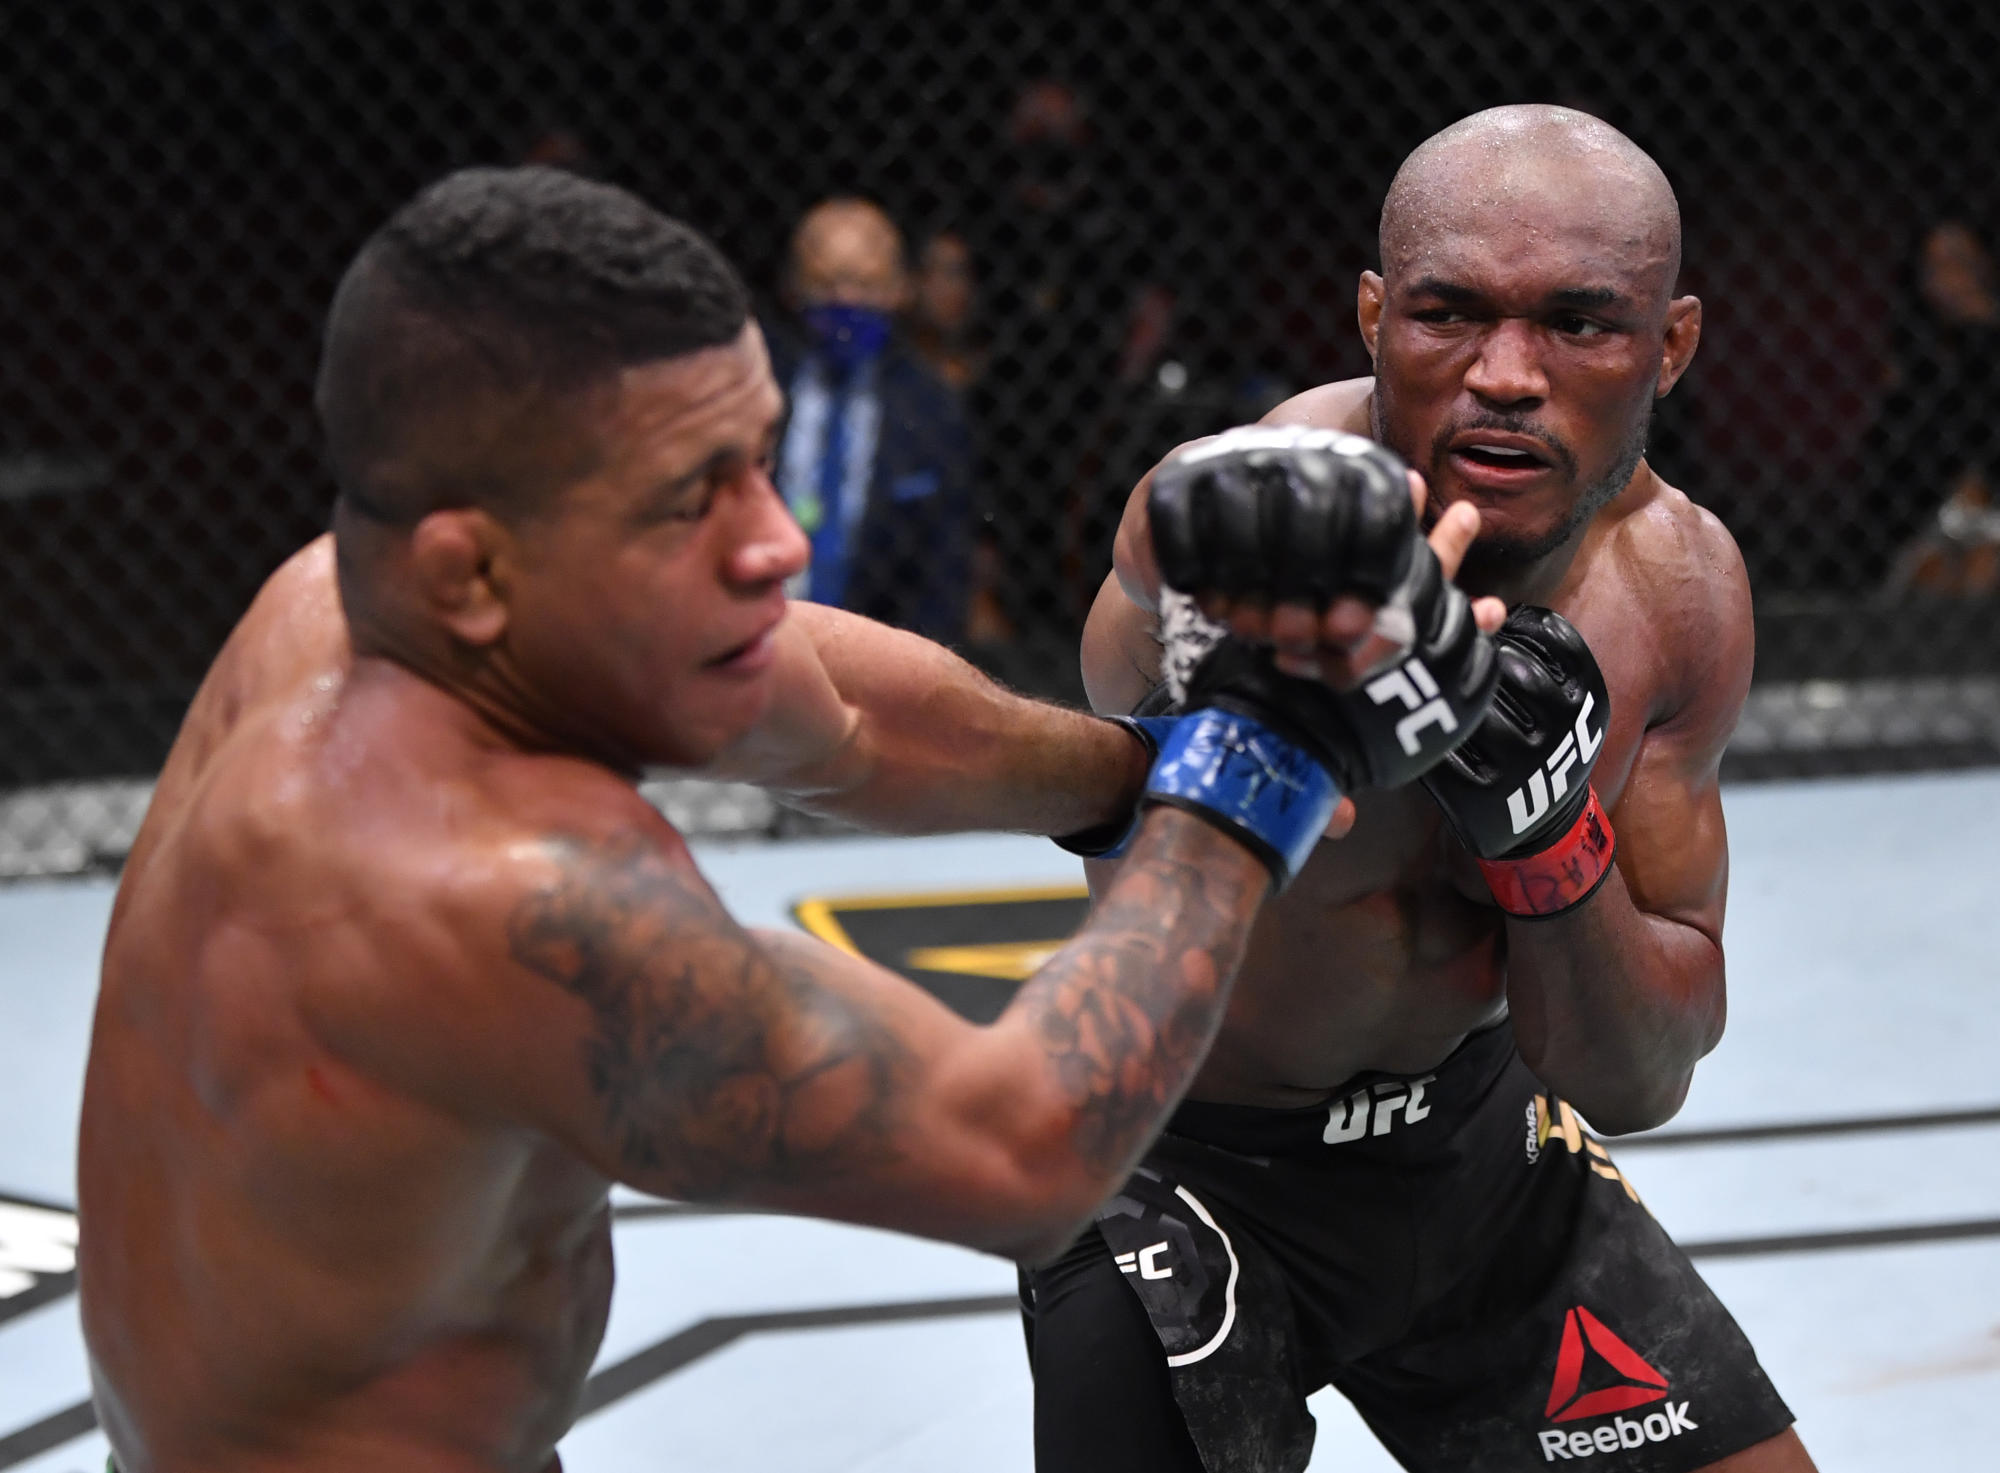 UFC 258: Kamaru Usman nearing St-Pierre level of dominance